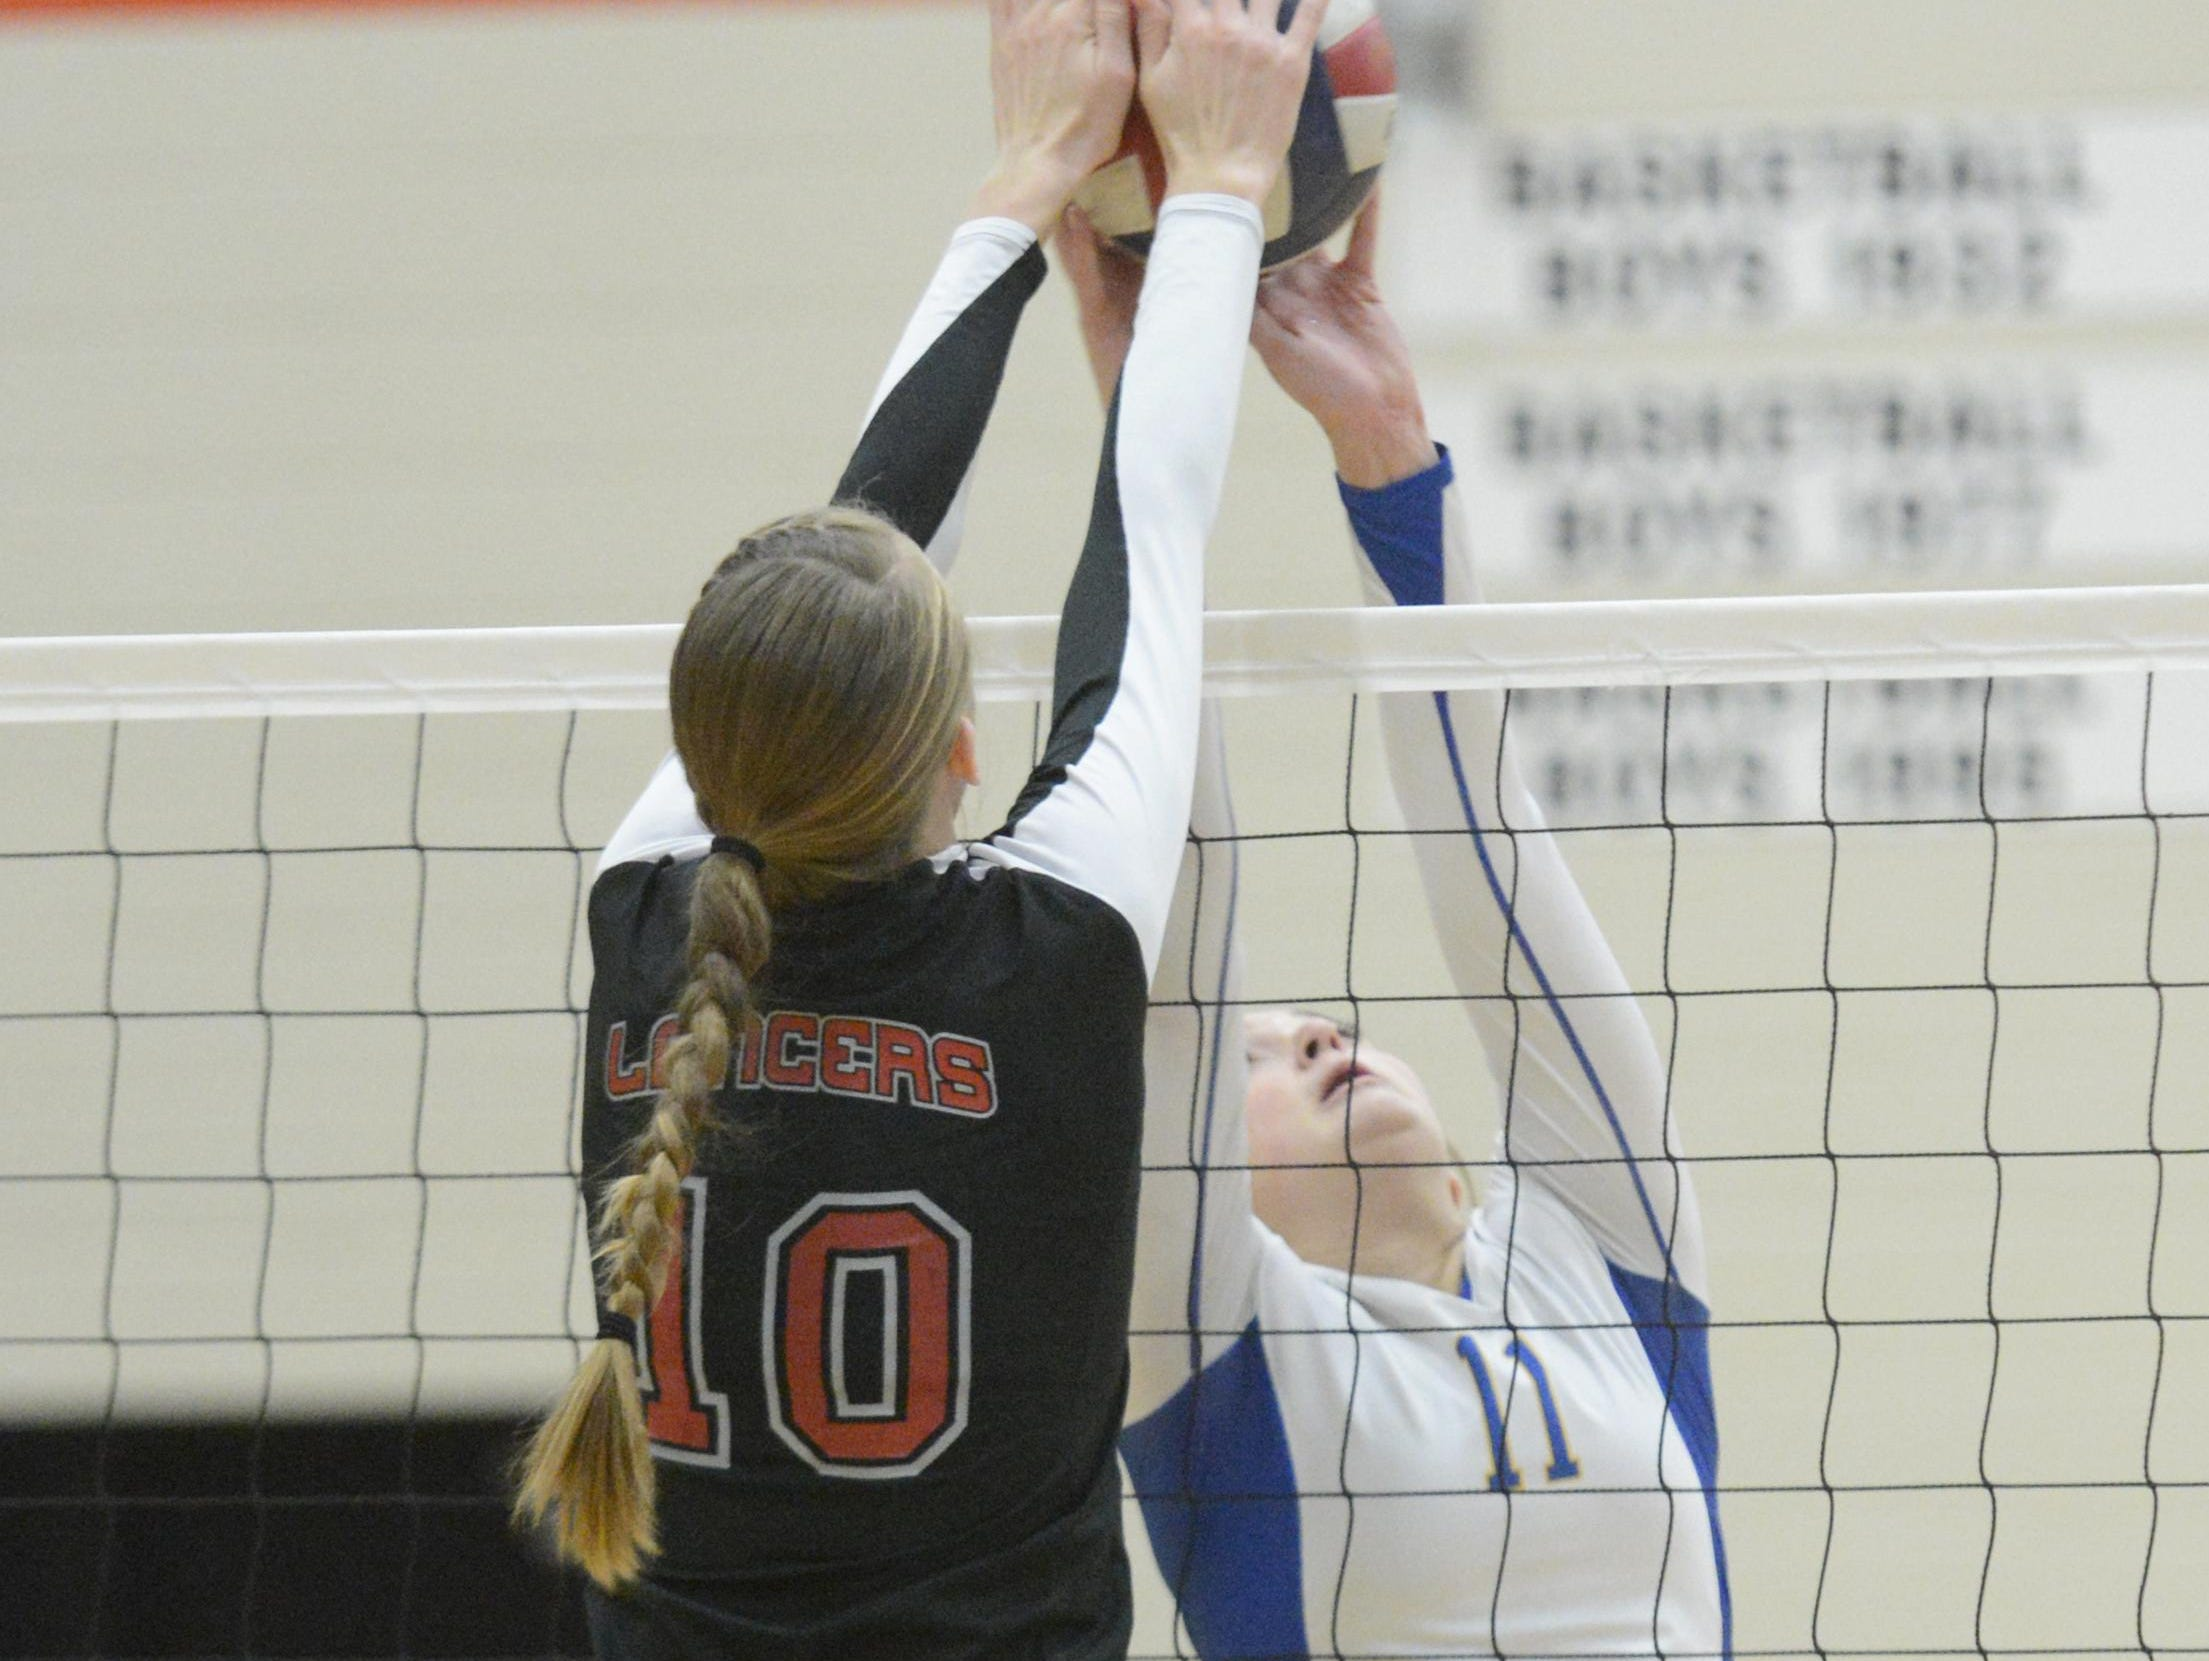 Manitowoc Lutheran's Lindsay Engelbrecht (10) goes for a block against Howards Grove's Taylor Bubolz during a game at the WIAA Division 3 Sectional Semifinals at Reedsville Middle School on Thursday, Oct. 29 in Reedsville. The Lancers fell to the Tigers 3-0.